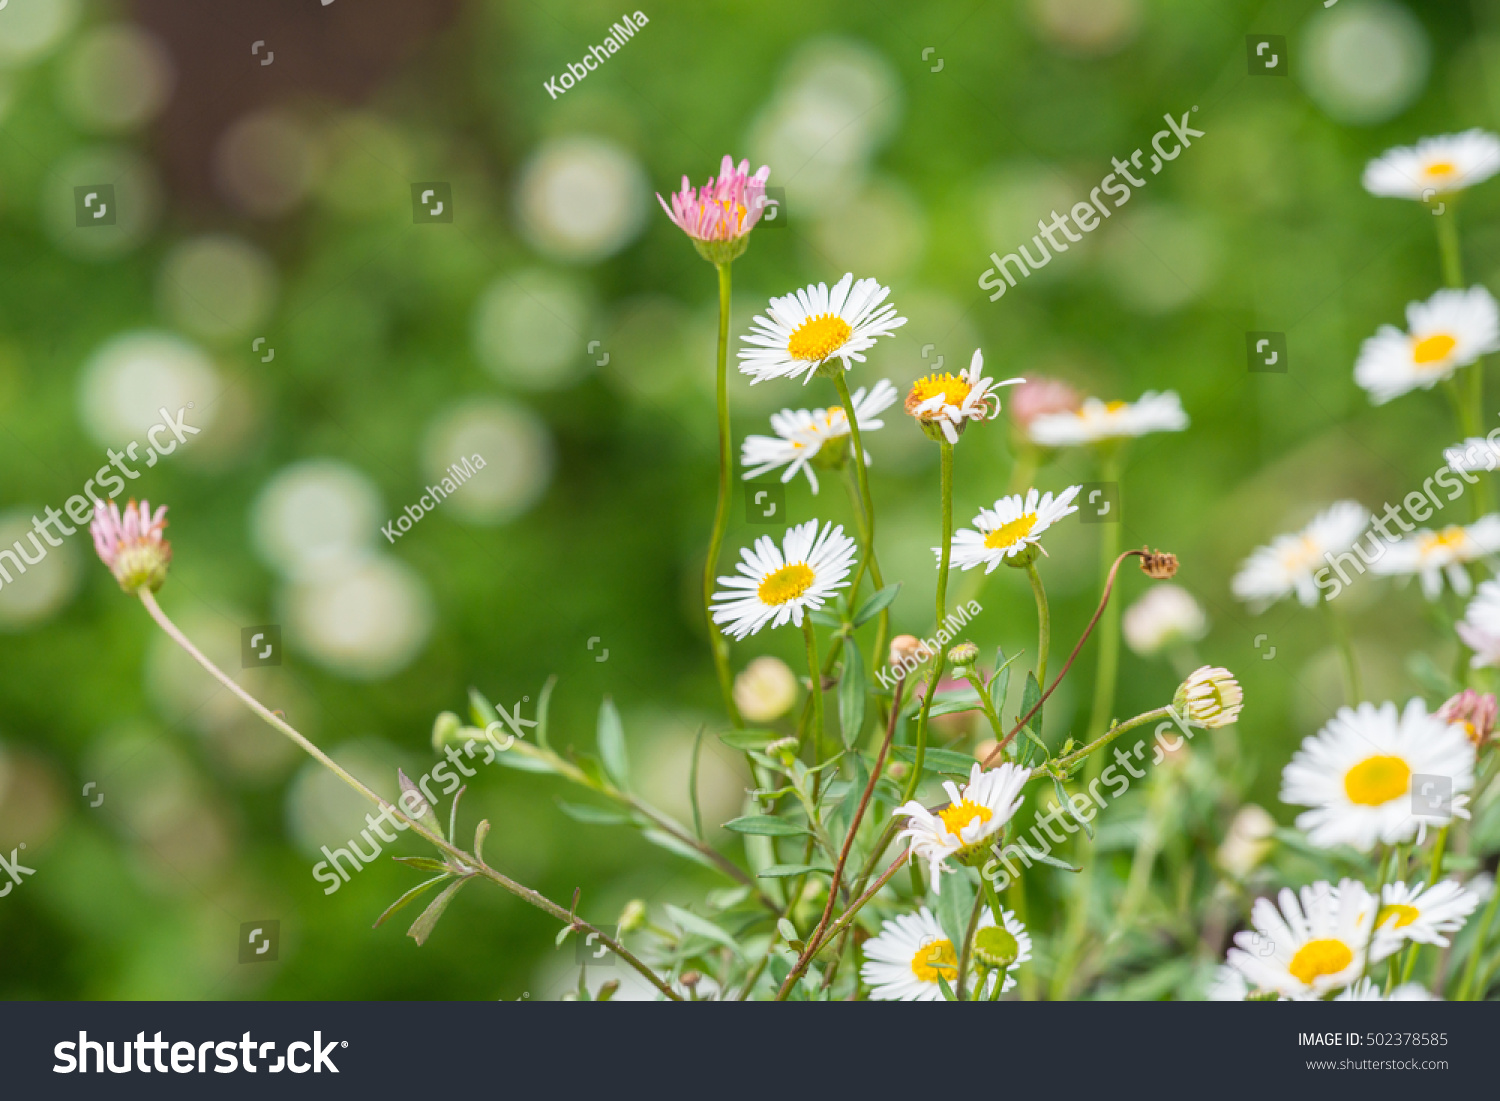 Small daisy flower on green rural meadow with shallow focus for small daisy flower on green rural meadow with shallow focus for natural spring background ez canvas izmirmasajfo